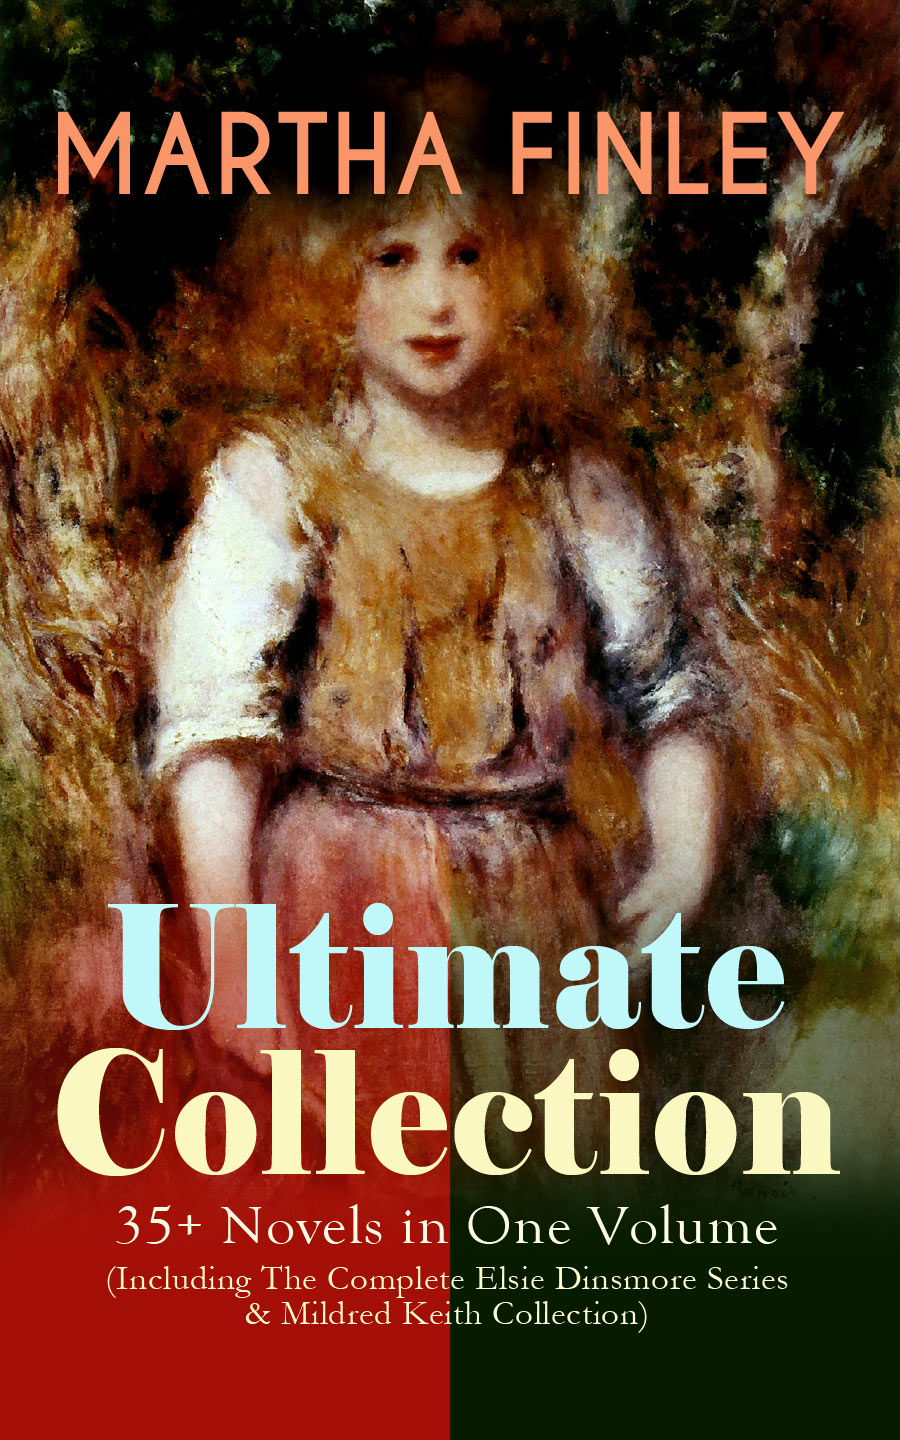 Finley Martha MARTHA FINLEY Ultimate Collection – 35+ Novels in One Volume (Including The Complete Elsie Dinsmore Series & Mildred Keith Collection)